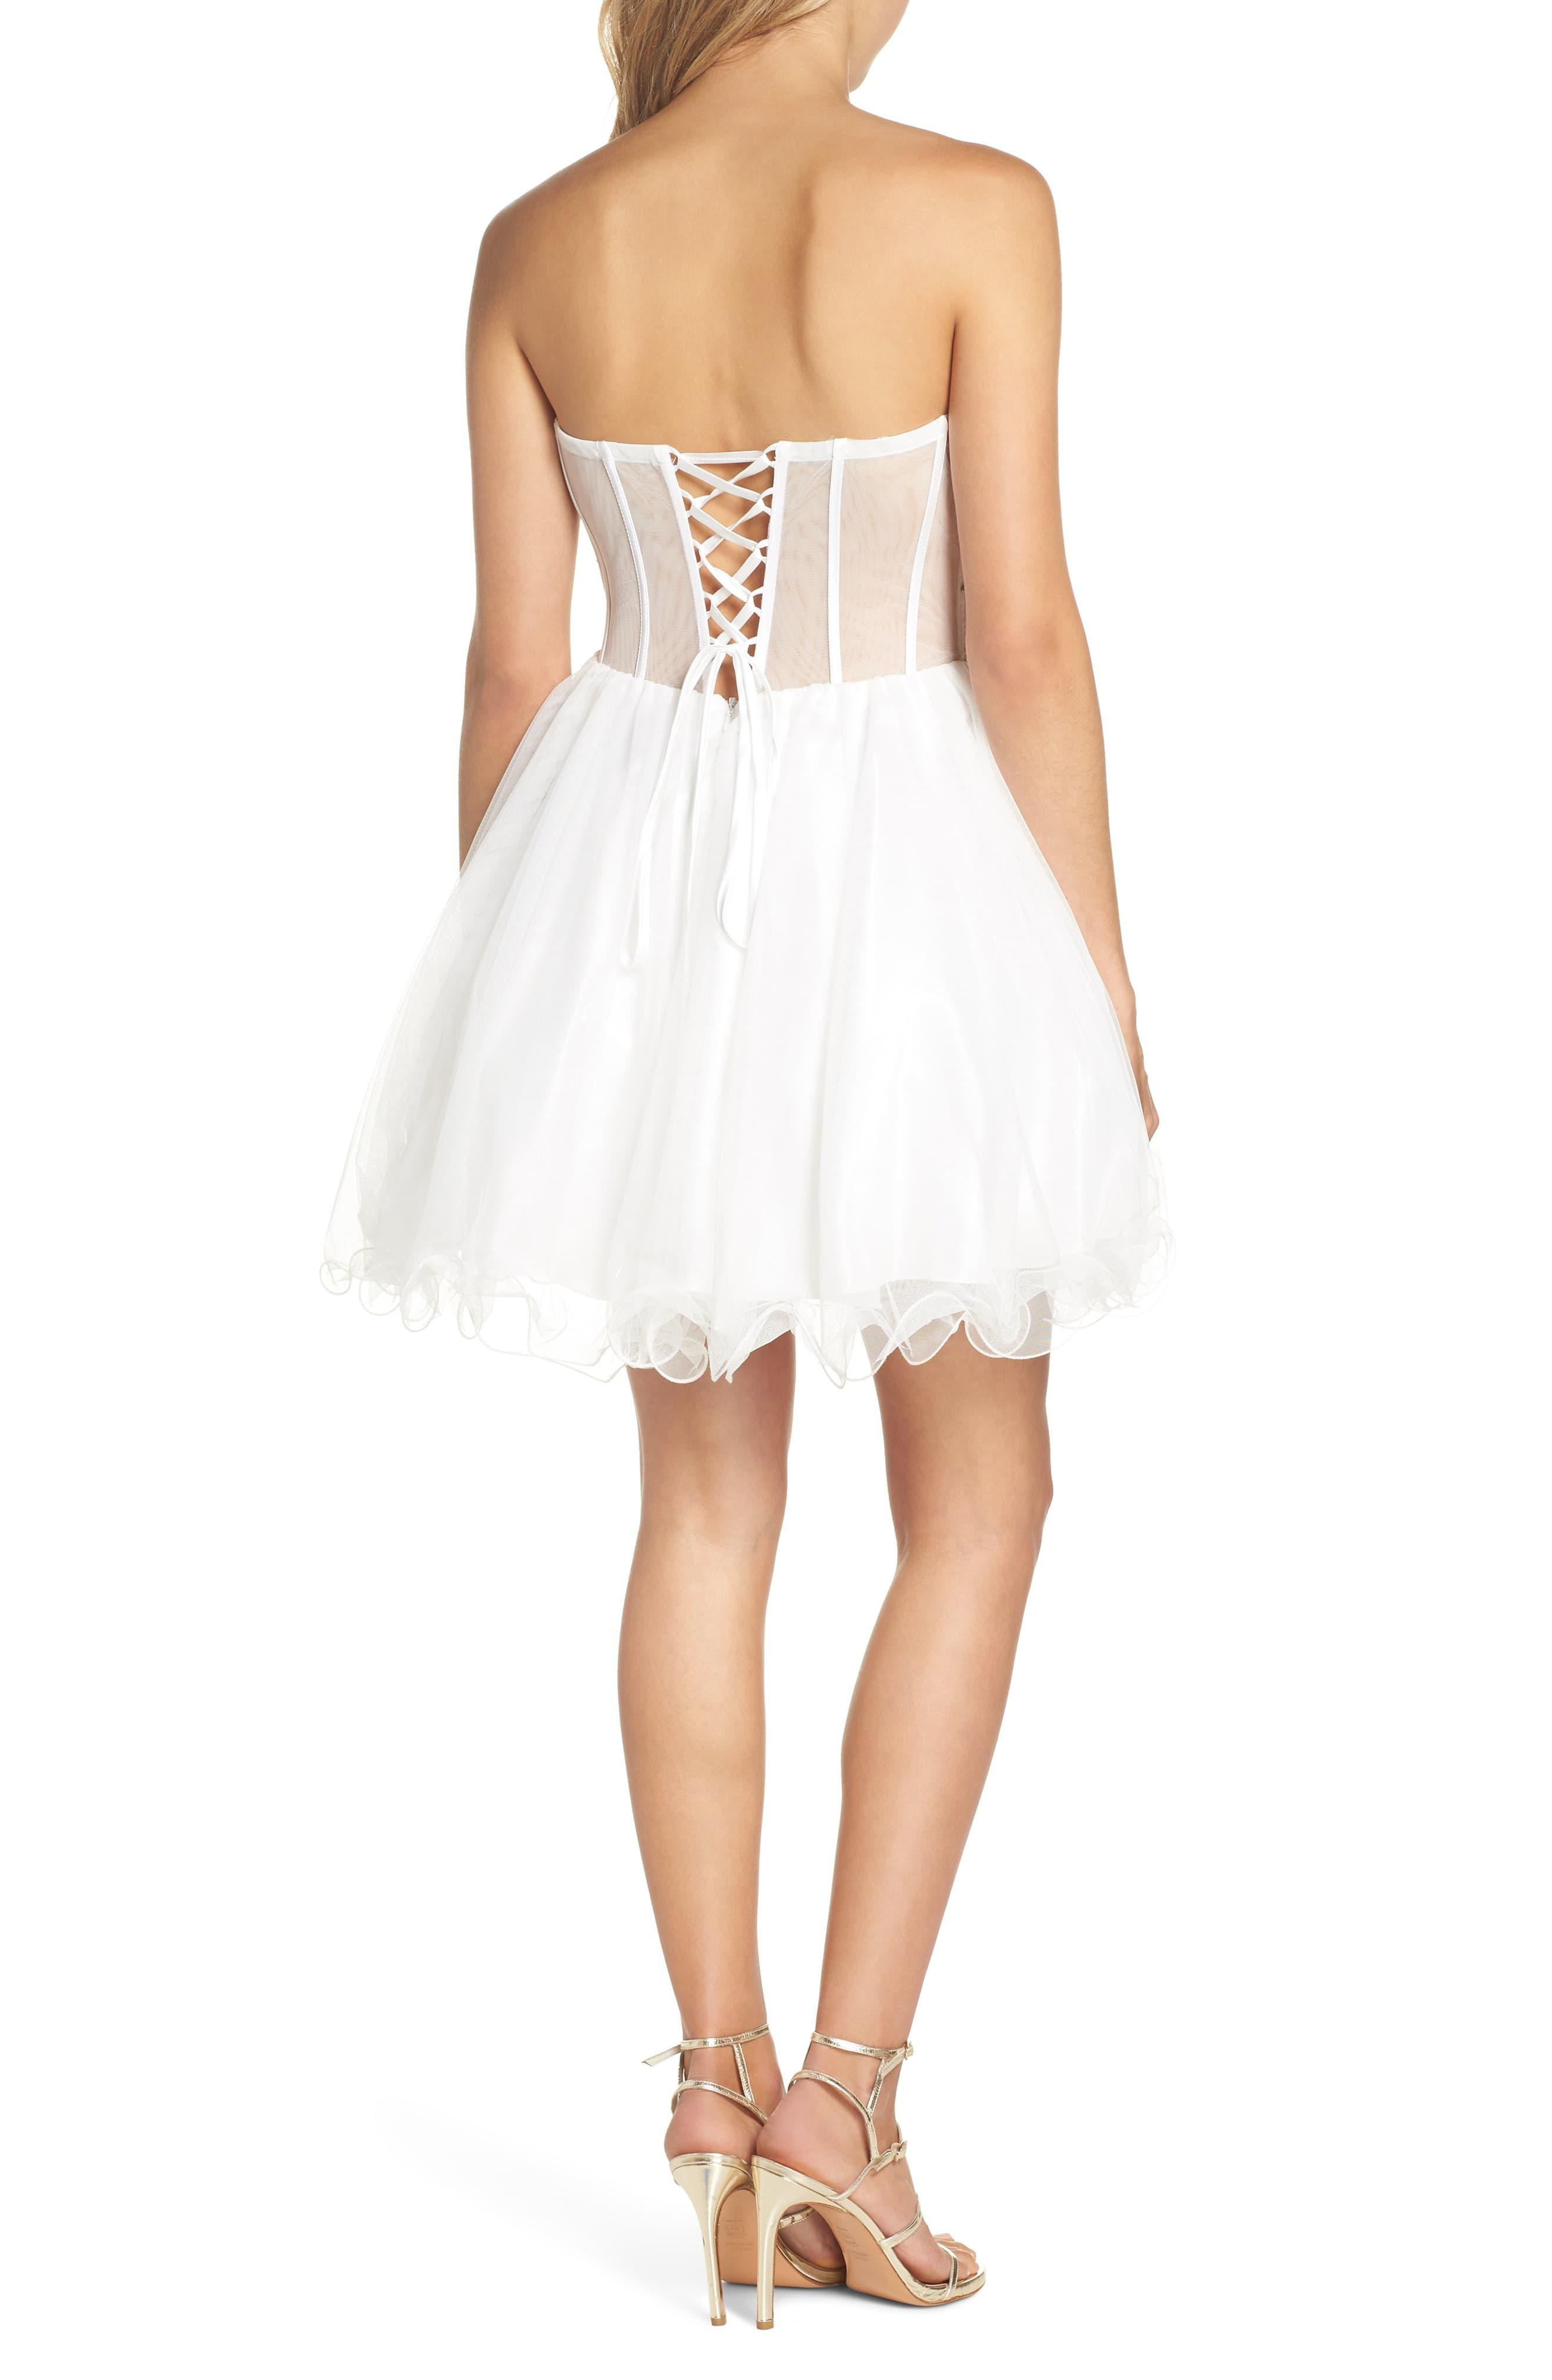 1c83c80f4f1 Blondie Nites - White Embroidered Lace Fit   Flare Dress - Lyst. View  fullscreen